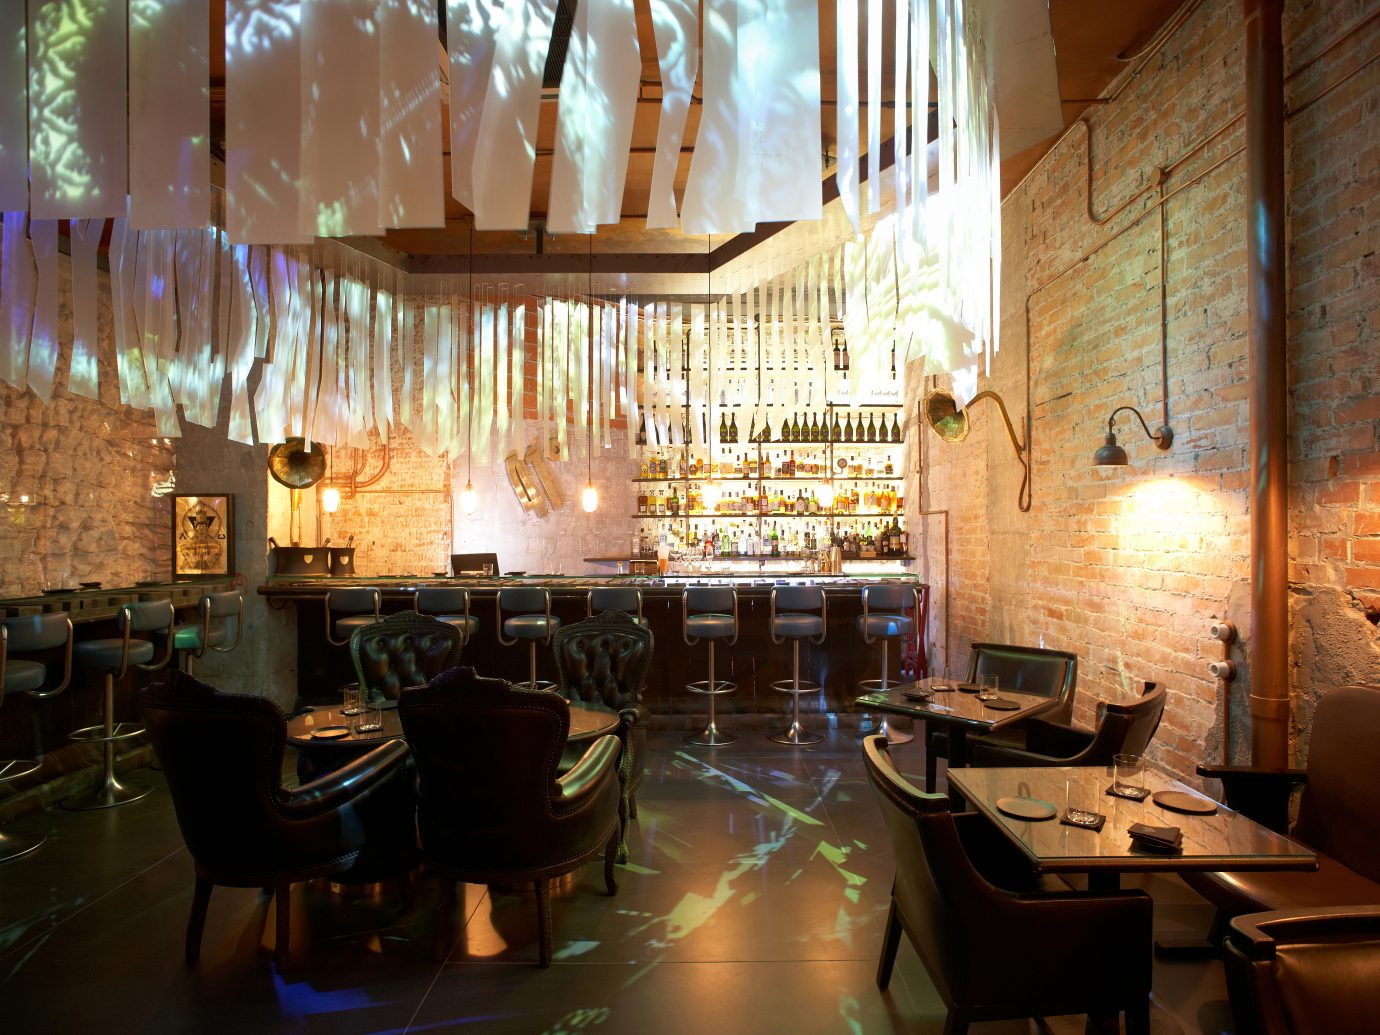 Enigma bar and dining room